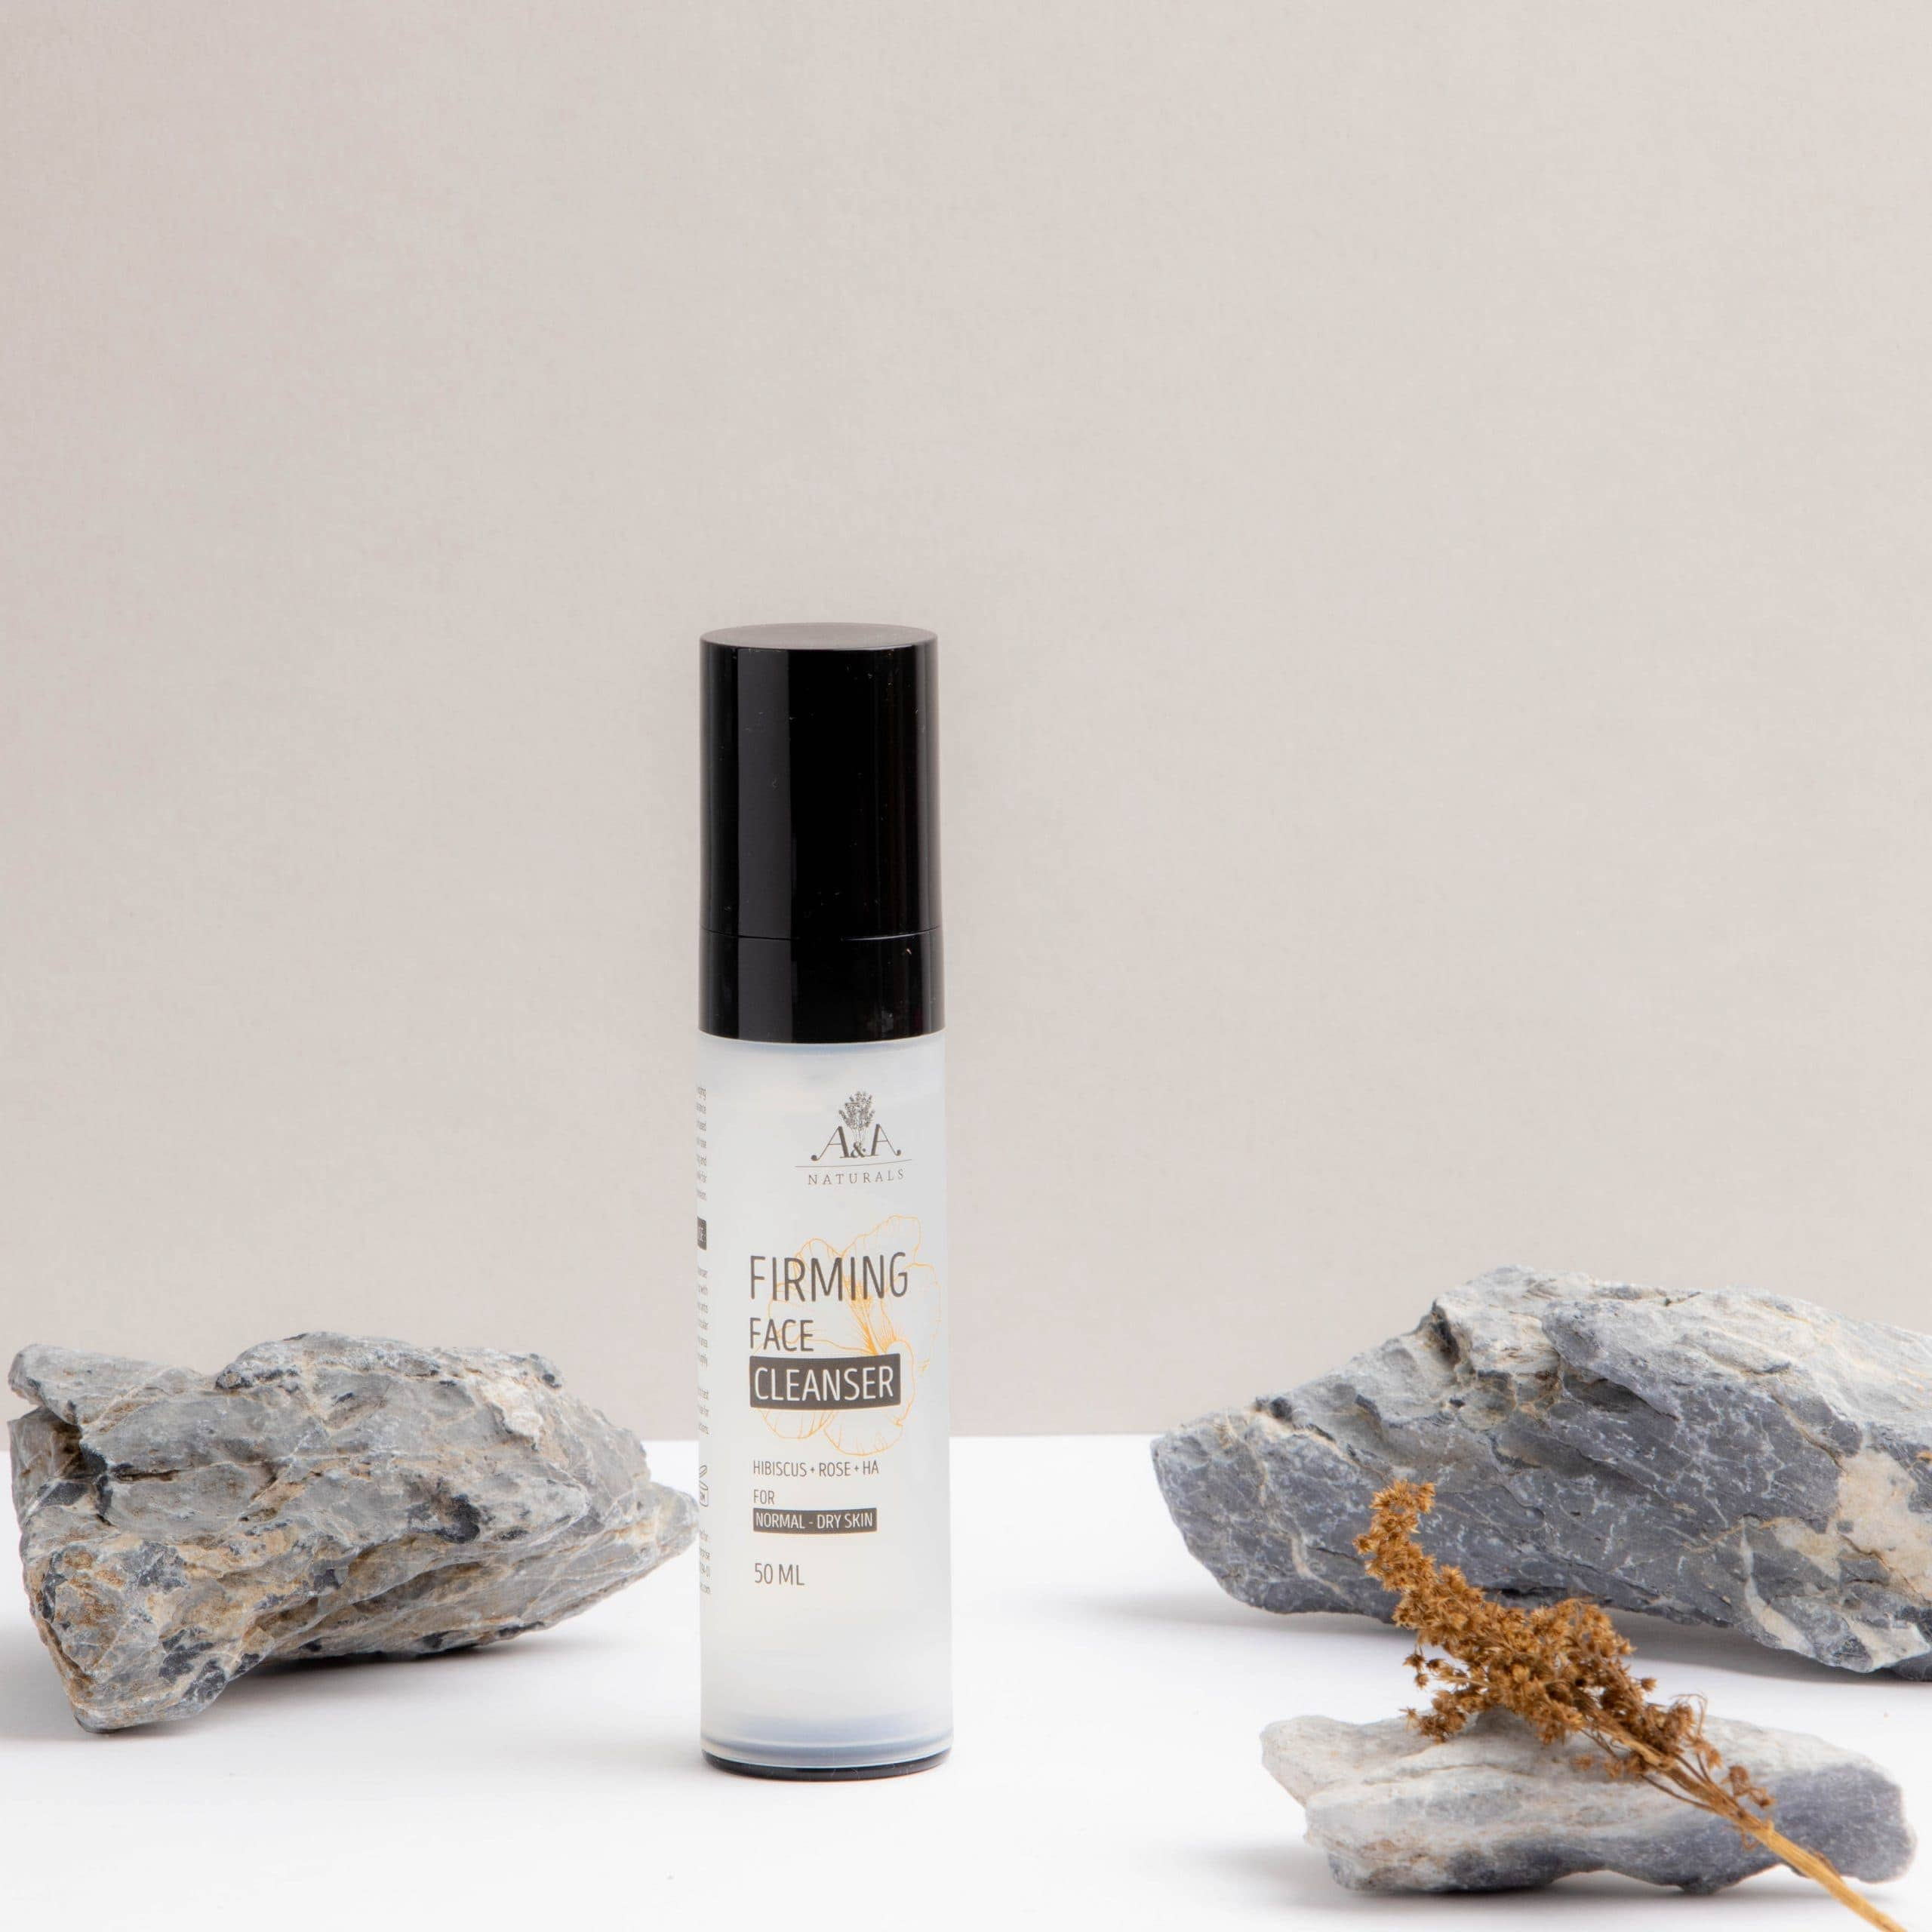 Firming Face Cleanser